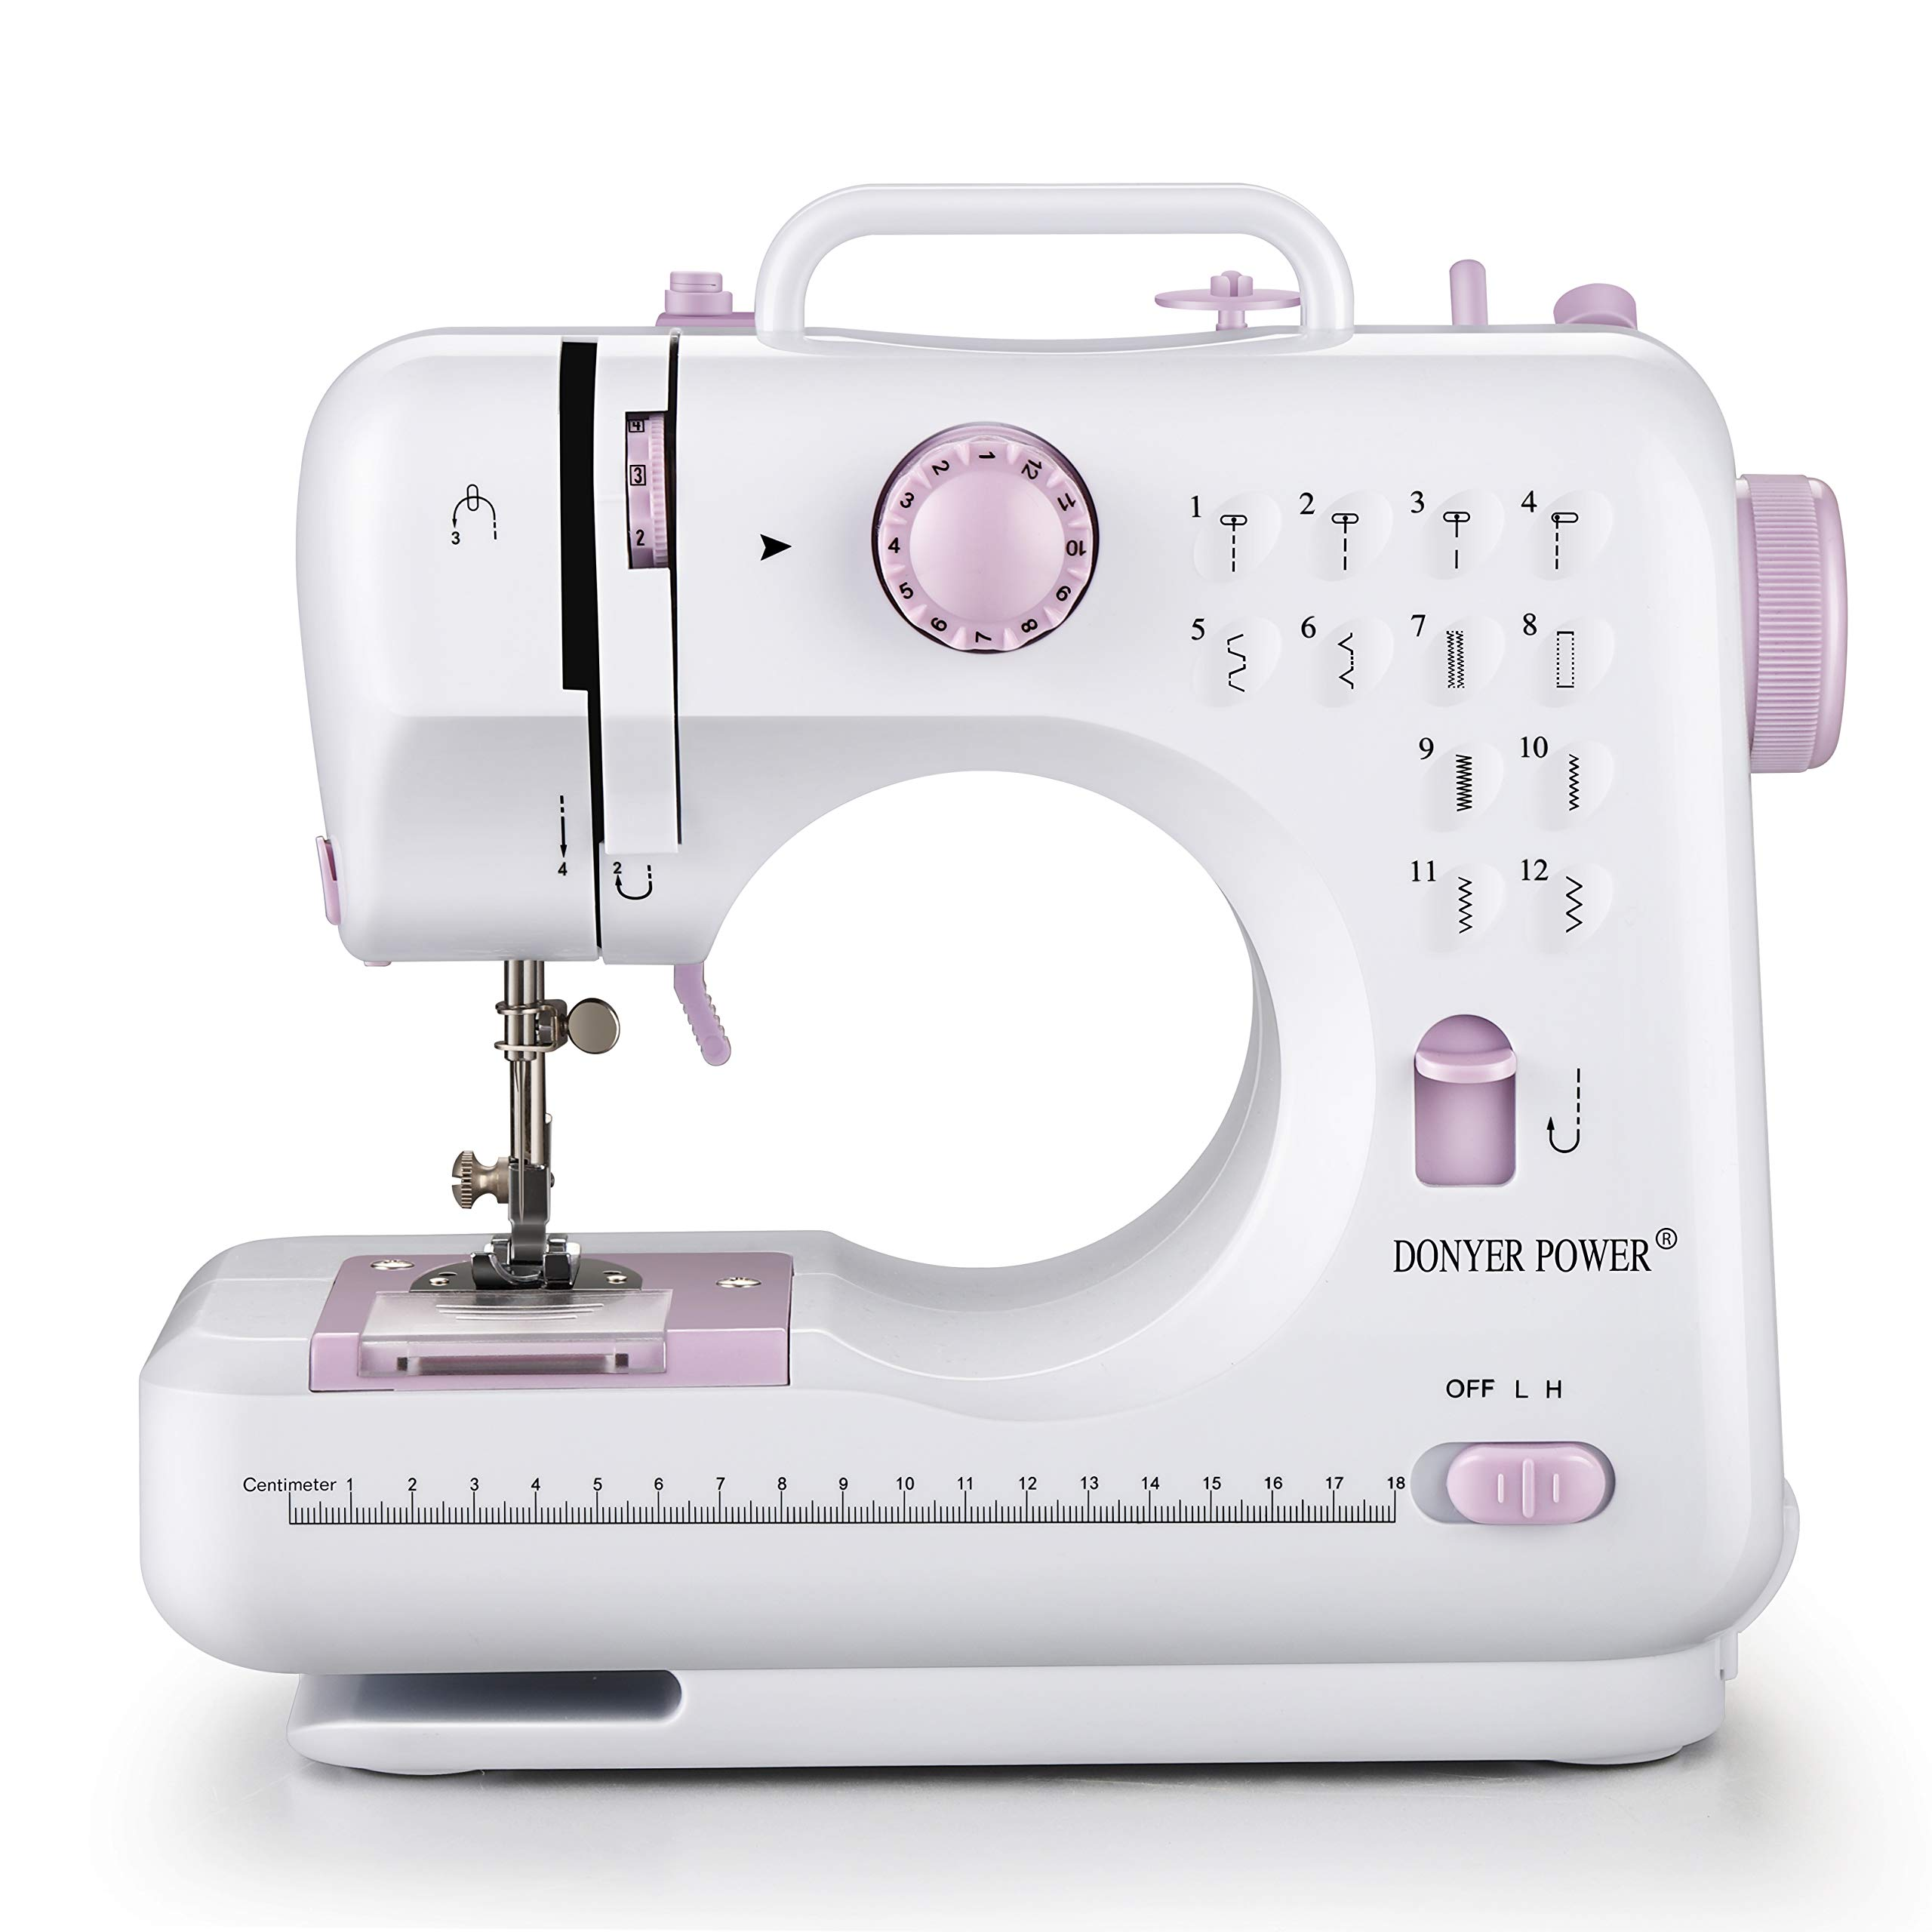 DONYER POWER Electric Sewing Machine Portable Mini with 12 Built-in Stitches, 2 Speeds Double Thread, Embroidery,Foot Pedal by DONYER POWER